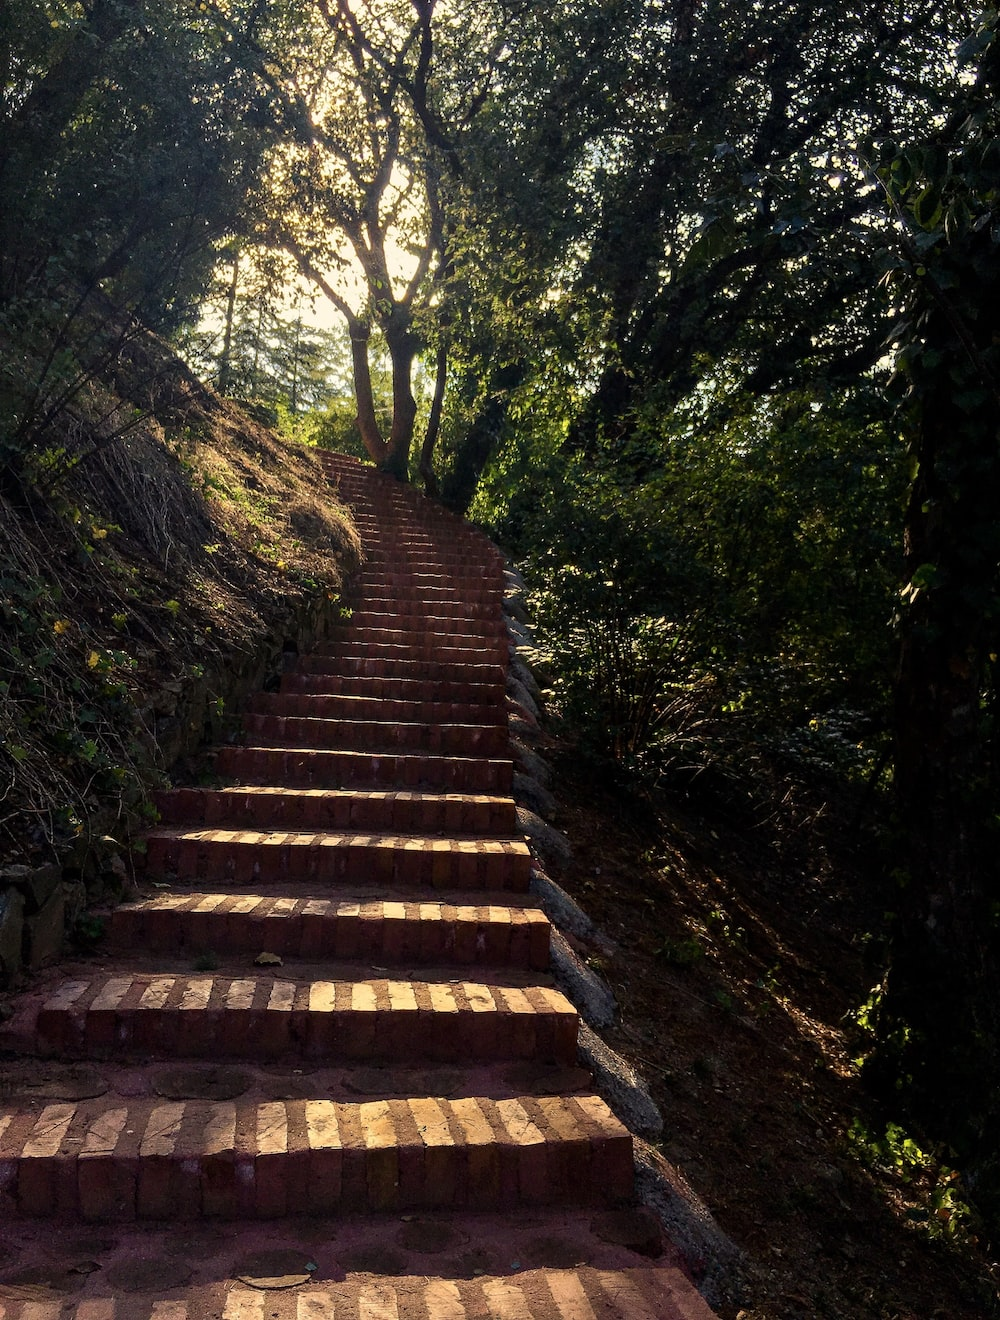 brown wooden stairs between green trees during daytime